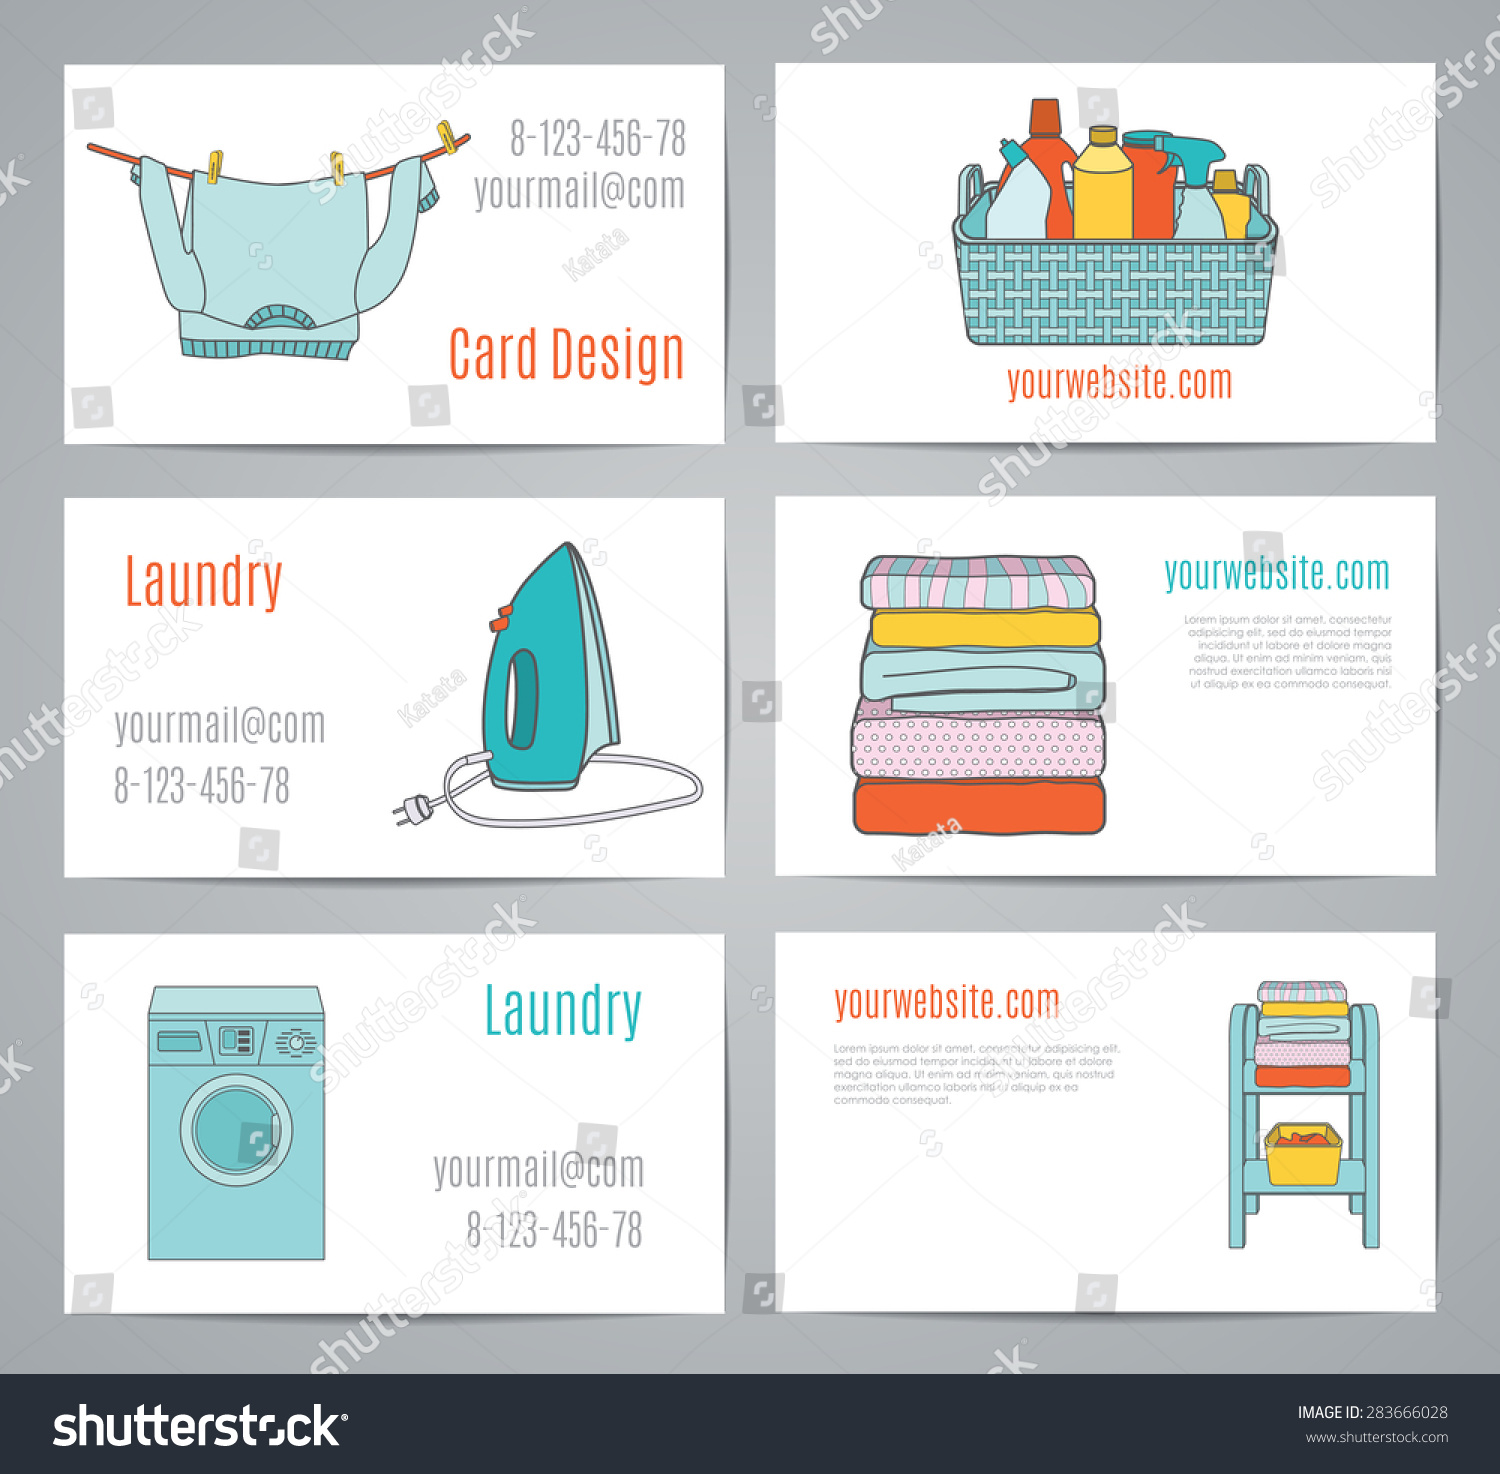 Business Cards Laundry Linear Art Sweater Stock Vector 283666028 ...